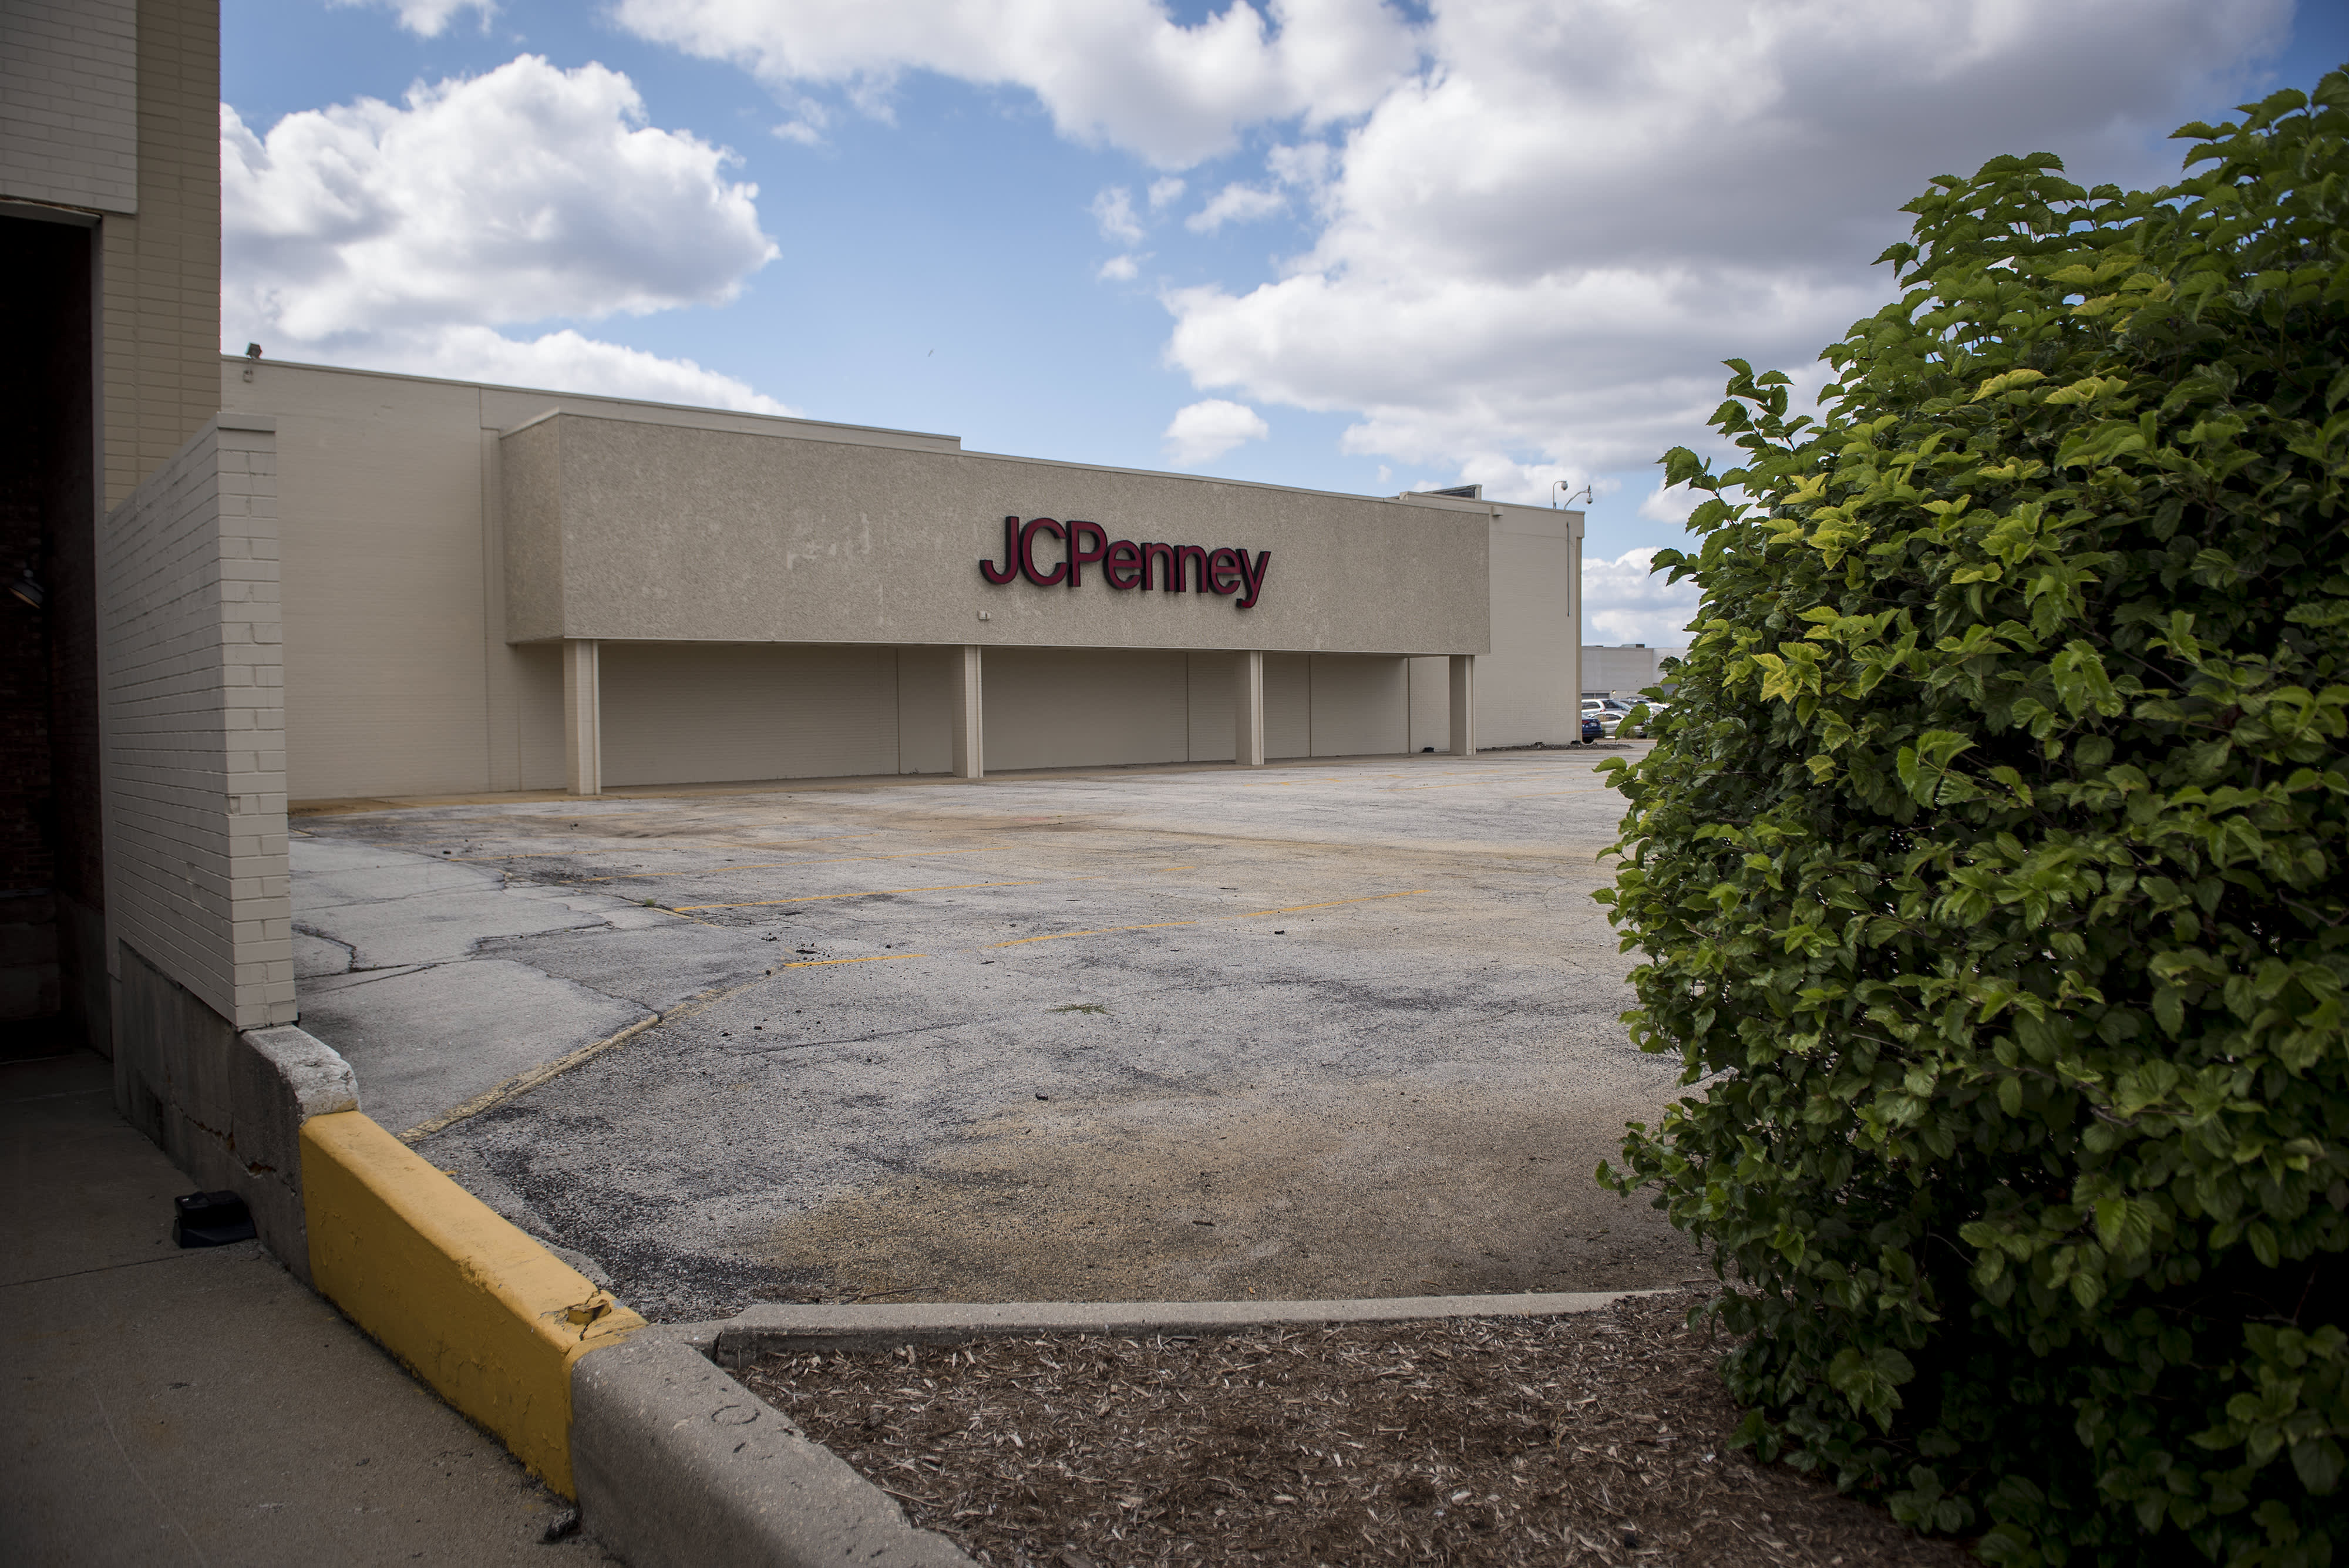 JC Penney: We haven't hired advisors 'to prepare for an in-court restructuring or bankruptcy'